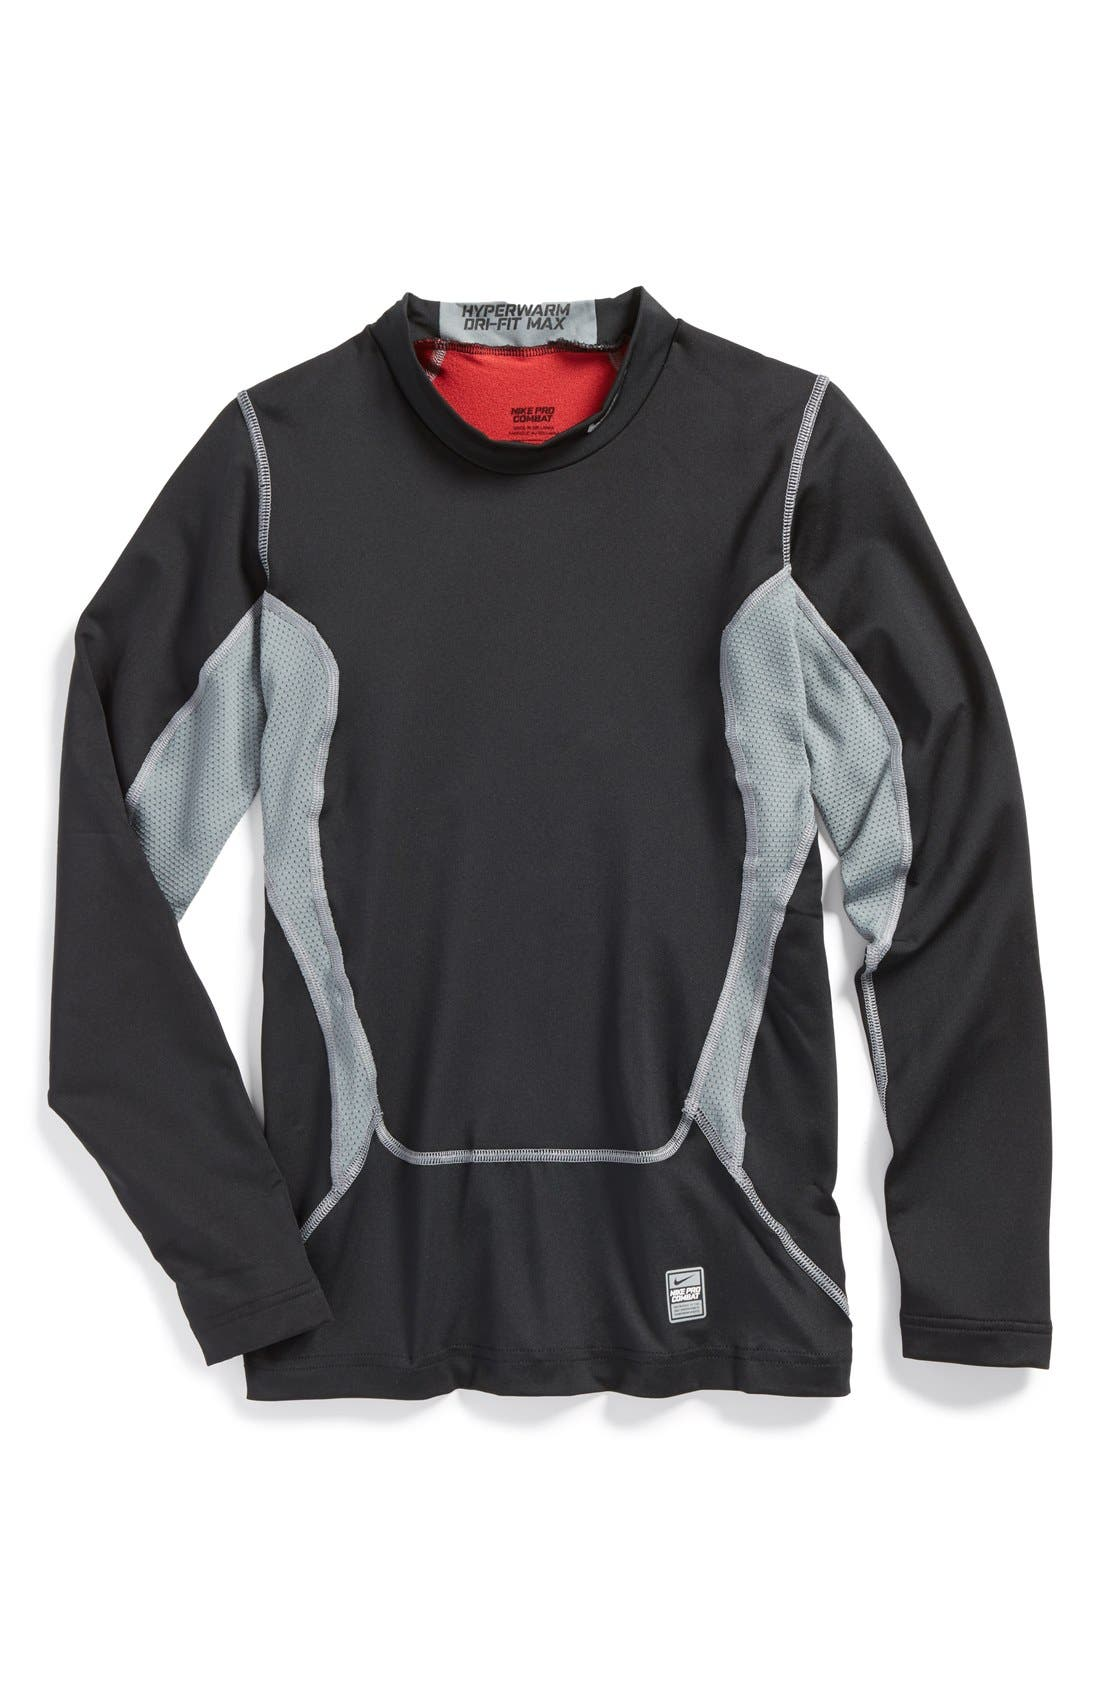 Alternate Image 1 Selected - Nike Compression Top (Big Boys)